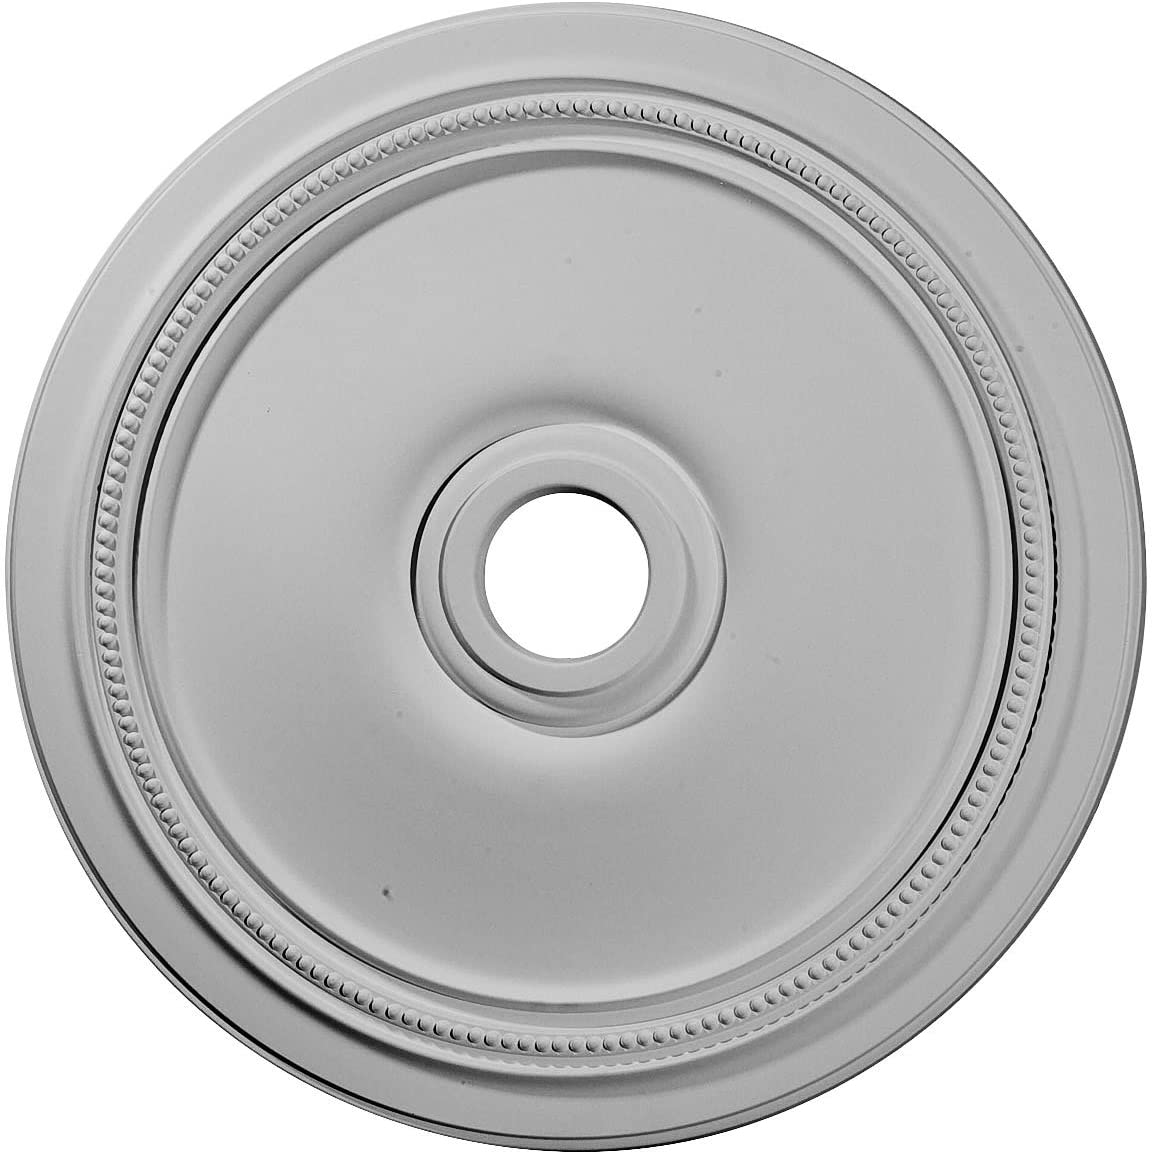 """Ekena Millwork CM24DI Diane Ceiling Medallion, 24""""OD x 3 5/8""""ID x 1 1/4""""P (Fits Canopies up to 6 1/4""""), Factory Primed"""